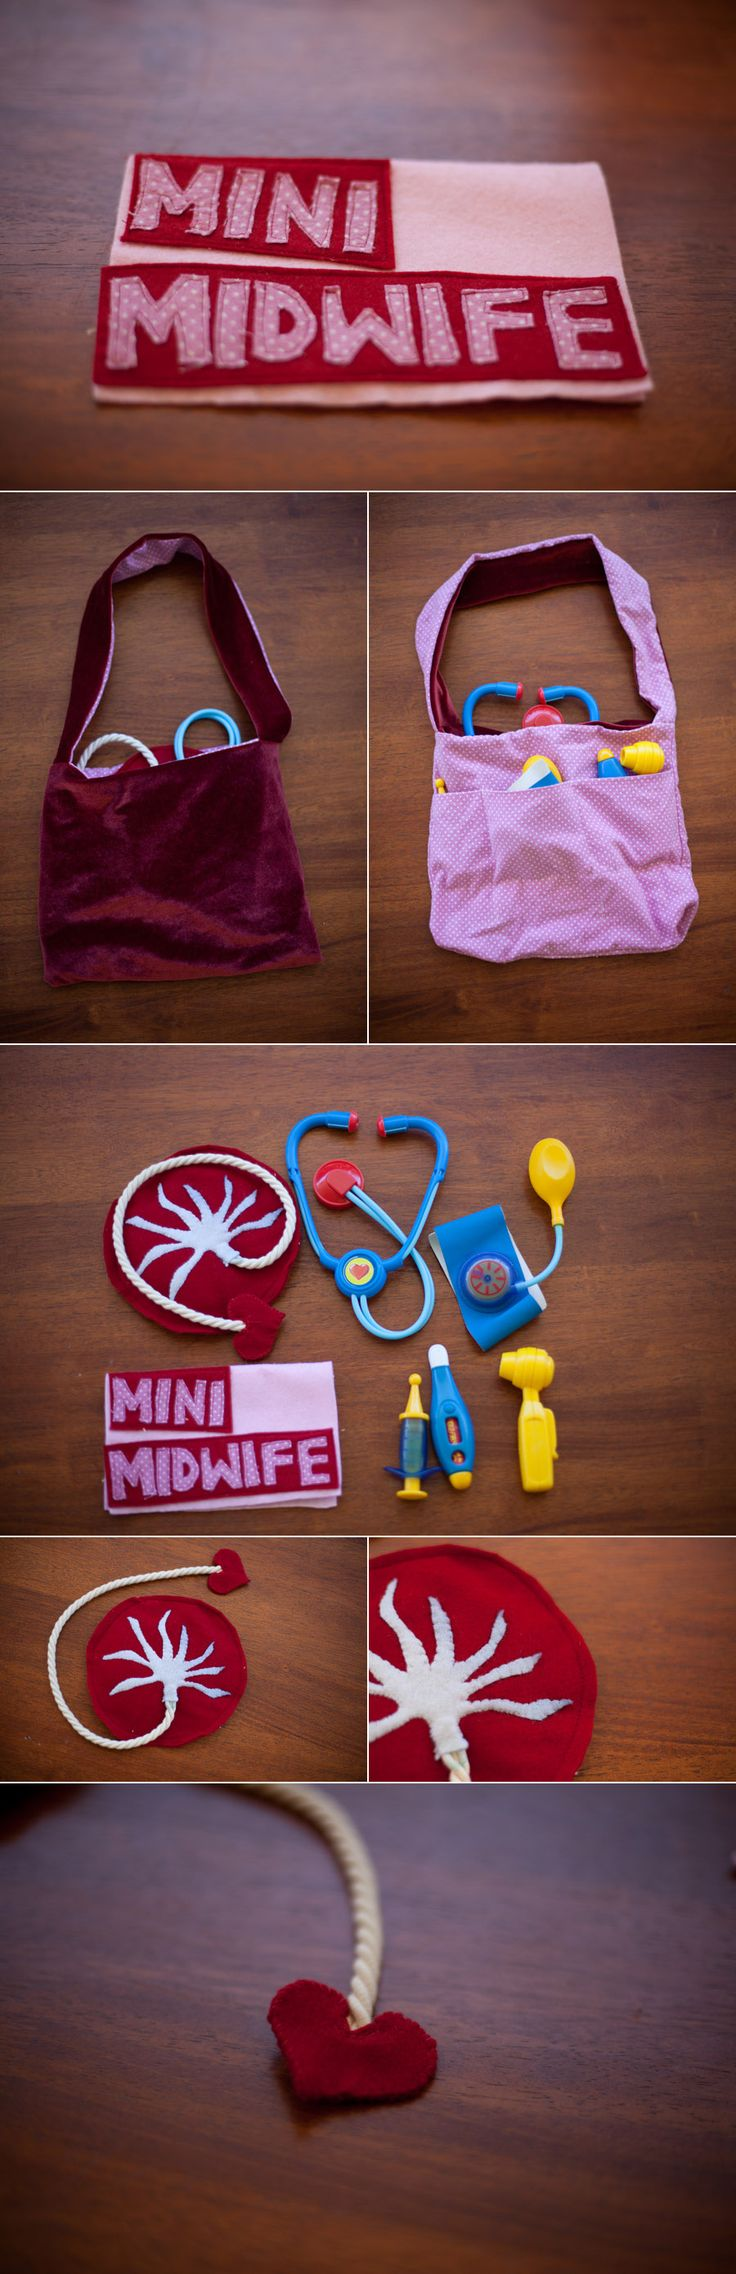 Mini Midwife Kit, complete with stuffed placenta!... This would be cute to have in the exam rooms for older siblings who come along to appointments